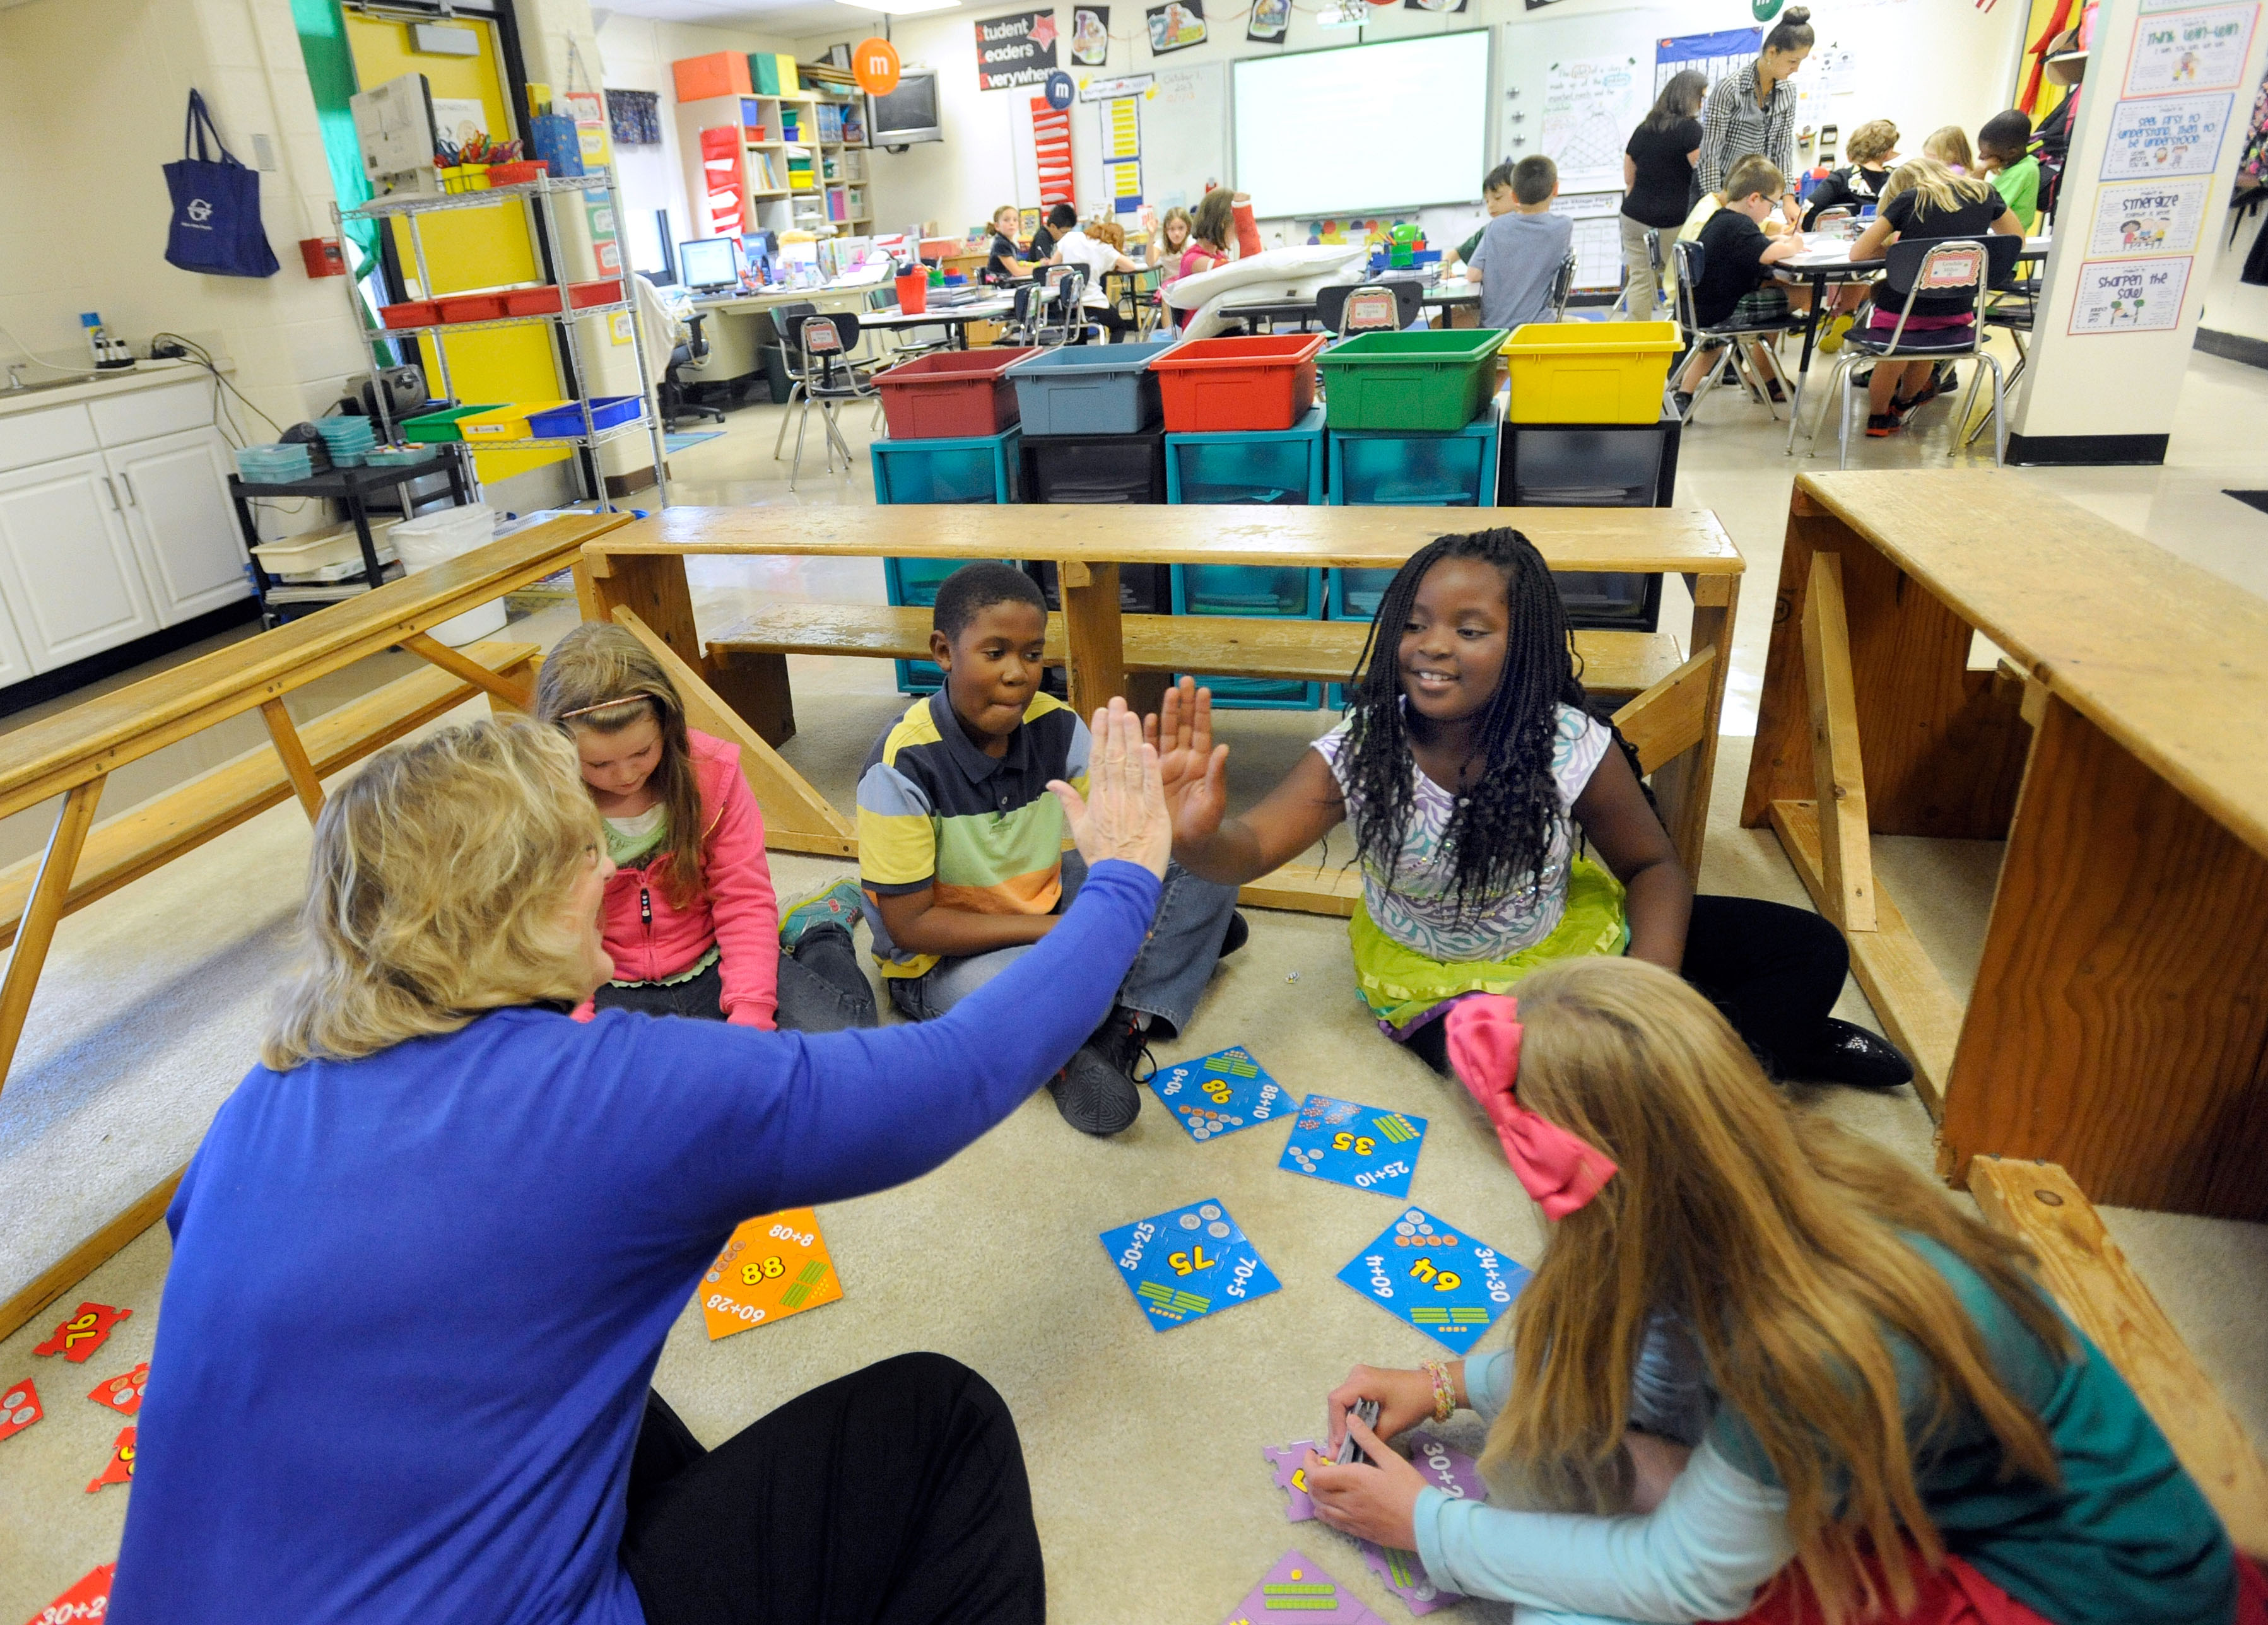 Third-grade teacher Sherry Frangia, left, high-fives student Jayla Hopkins during a math lesson at Silver Lake Elementary School in Middletown, Del. Tuesday, Oct. 1, 2013. Silver Lake has begun implementing the national Common Core State Standards for academics. (AP Photo/Steve Ruark)